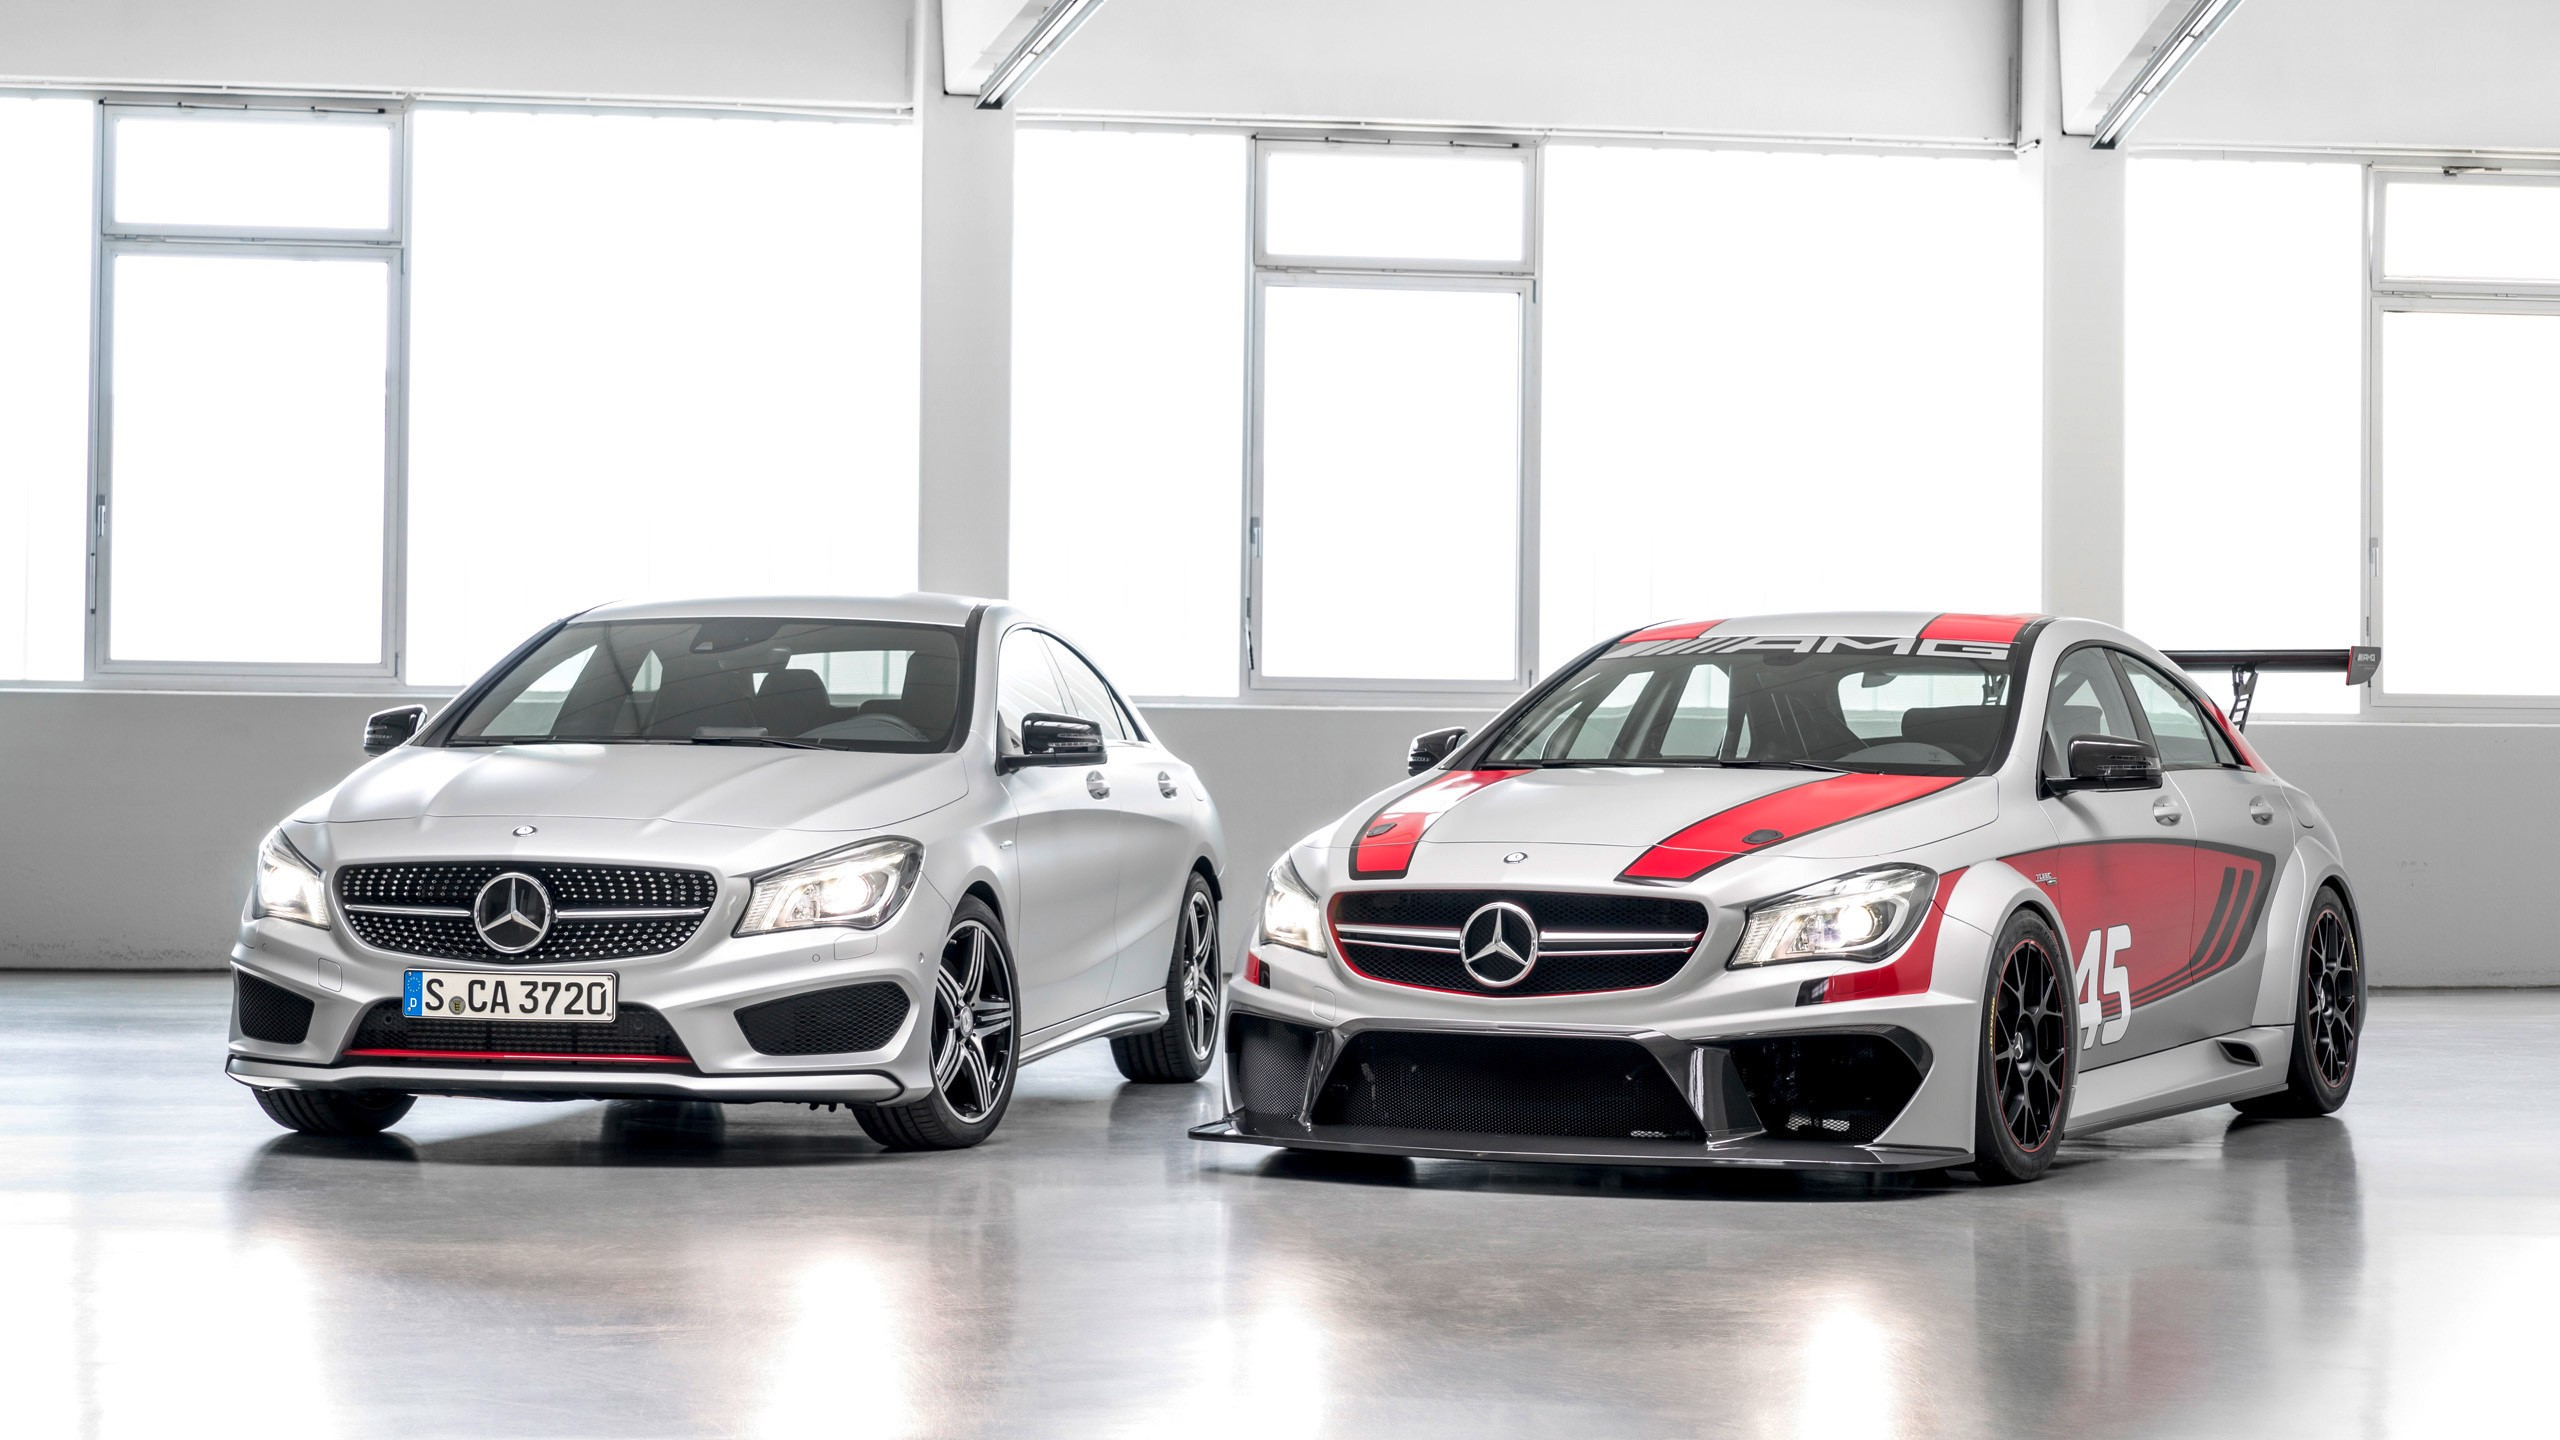 2014 mercedes benz cla 45 amg racing series wallpaper hd for 2014 mercedes benz cla 45